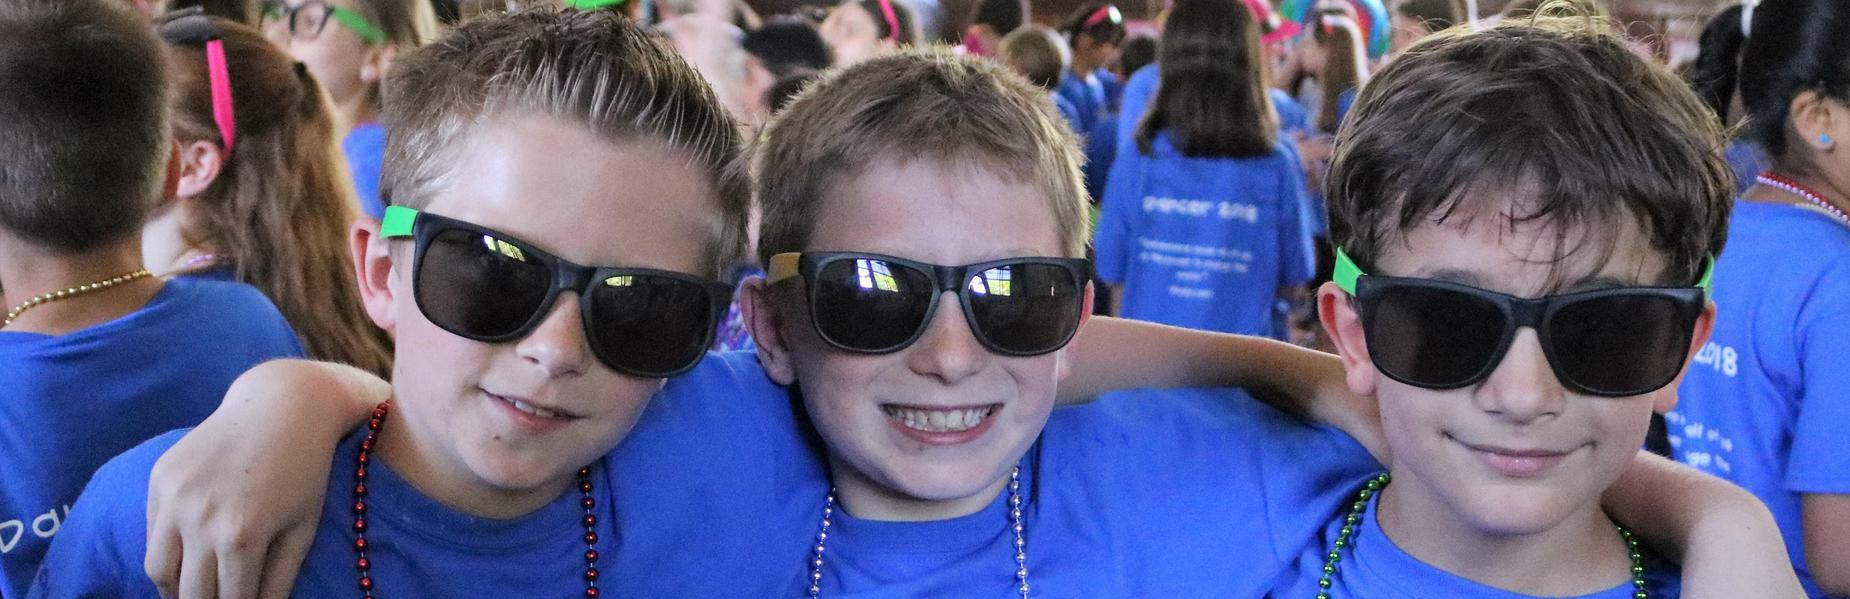 At McKinley Elementary School, students in grades 1 through 5 danced for 2 ½ hours on May 23 in support of leukemia/pediatric cancer research, raising a record $14,109.46 at the 7th Annual McKinley-THON.